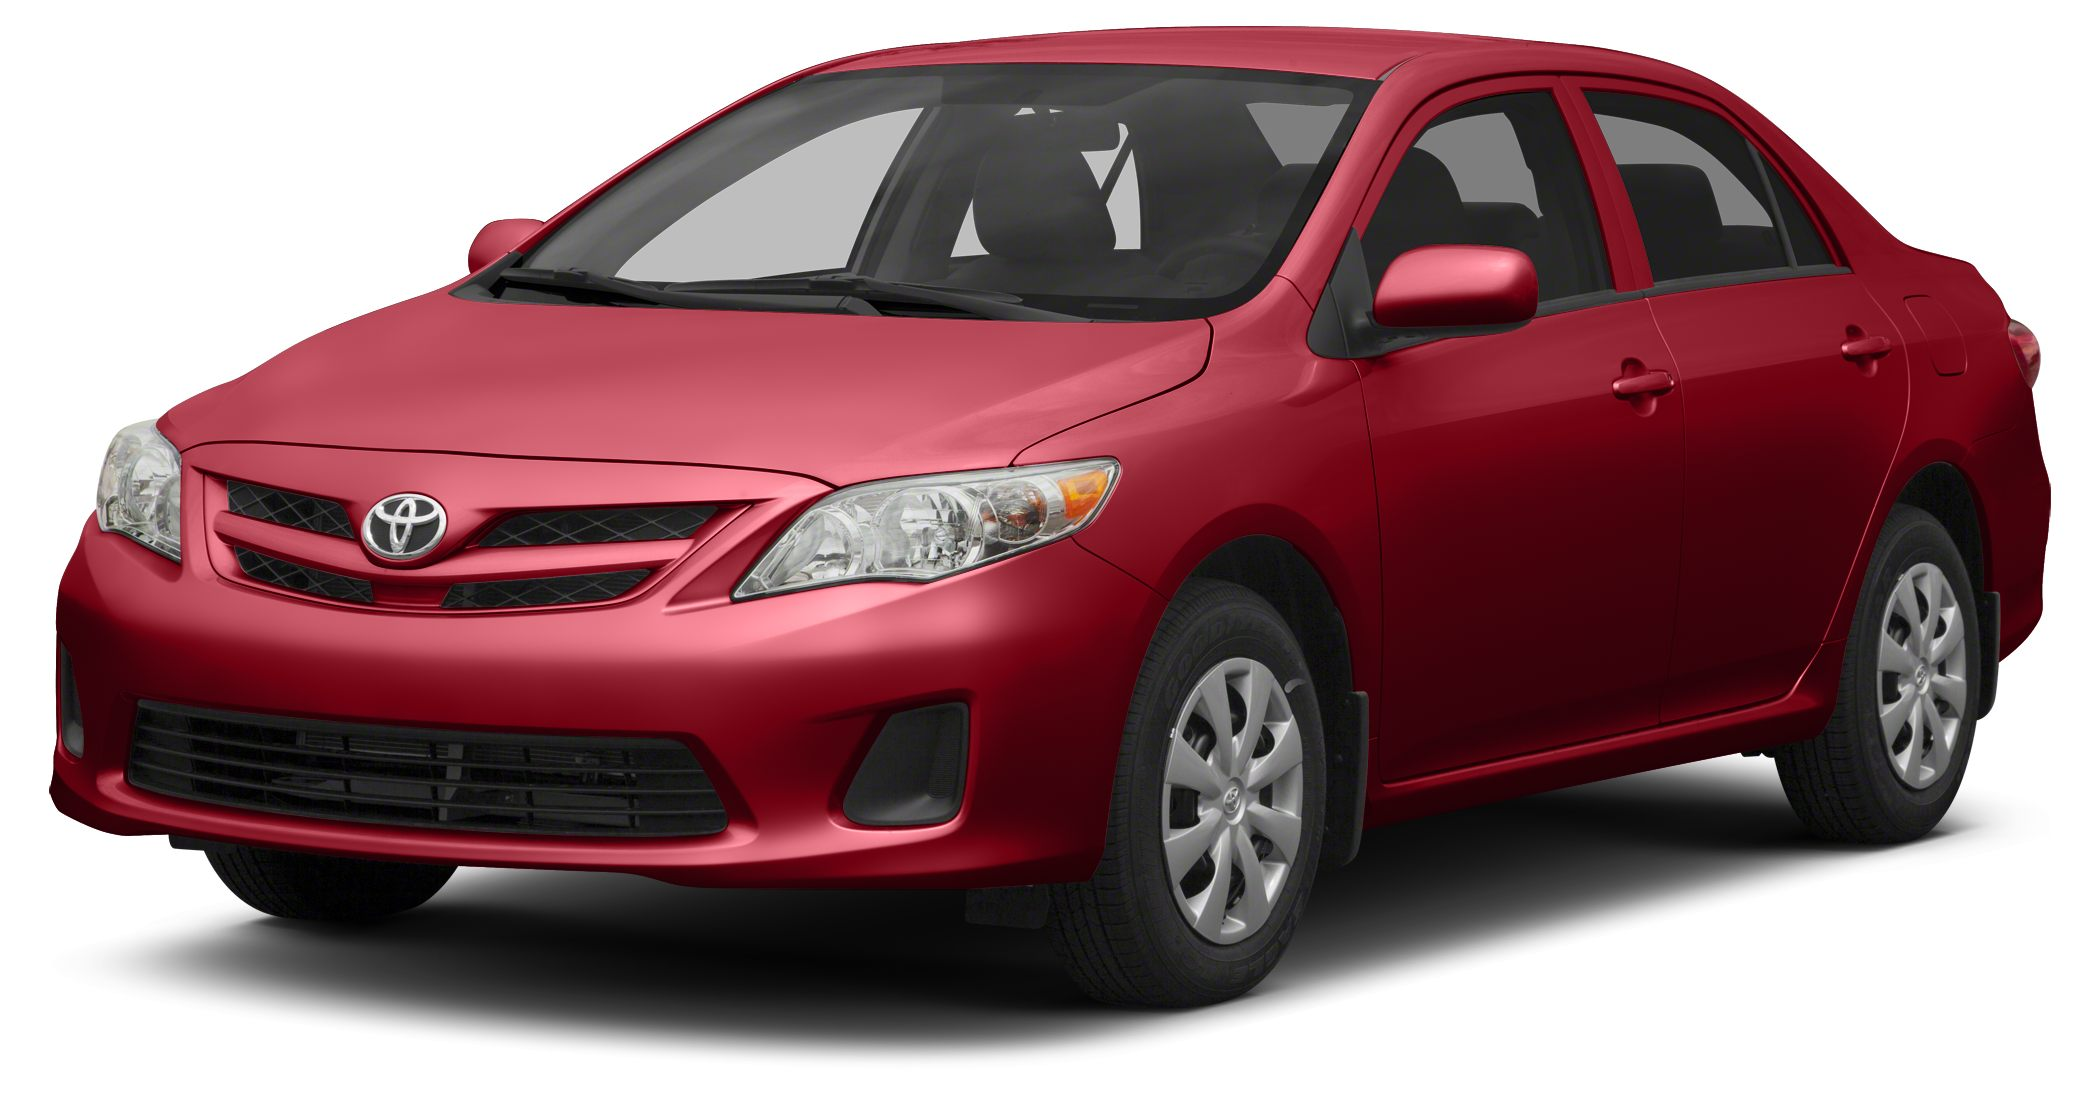 2013 Toyota Corolla LE EPA 34 MPG Hwy26 MPG City CARFAX 1-Owner GREAT MILES 2949 LE trim BAR